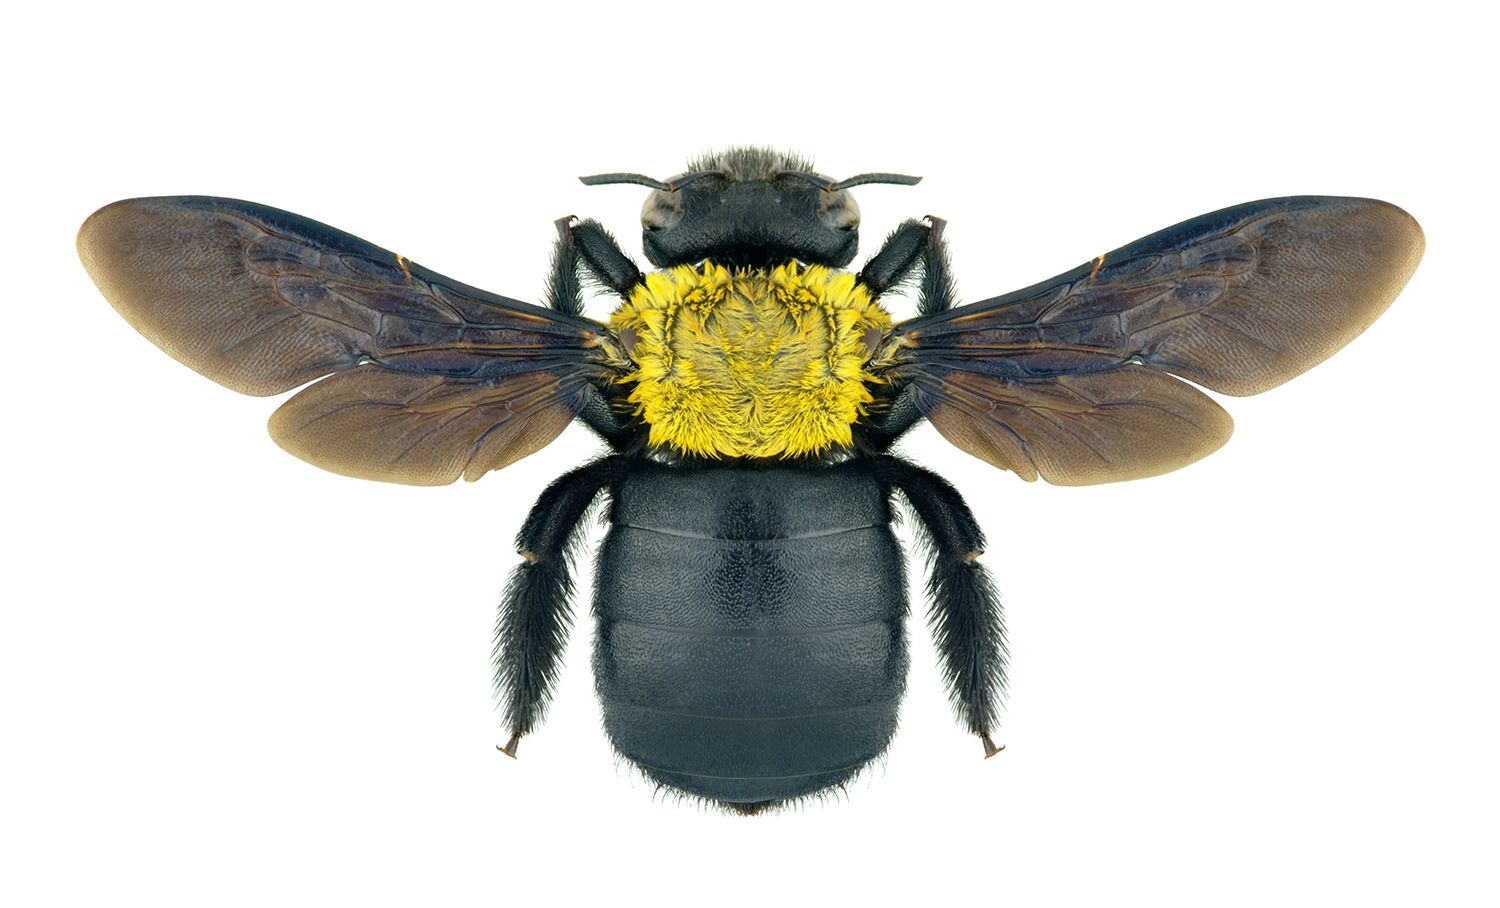 Have Carpenter Bees Save Your Porch Deck And Wood Siding With Our Carpenter Bee Solutions Carpenter Bee Carpenter Bee Trap Wood Bees